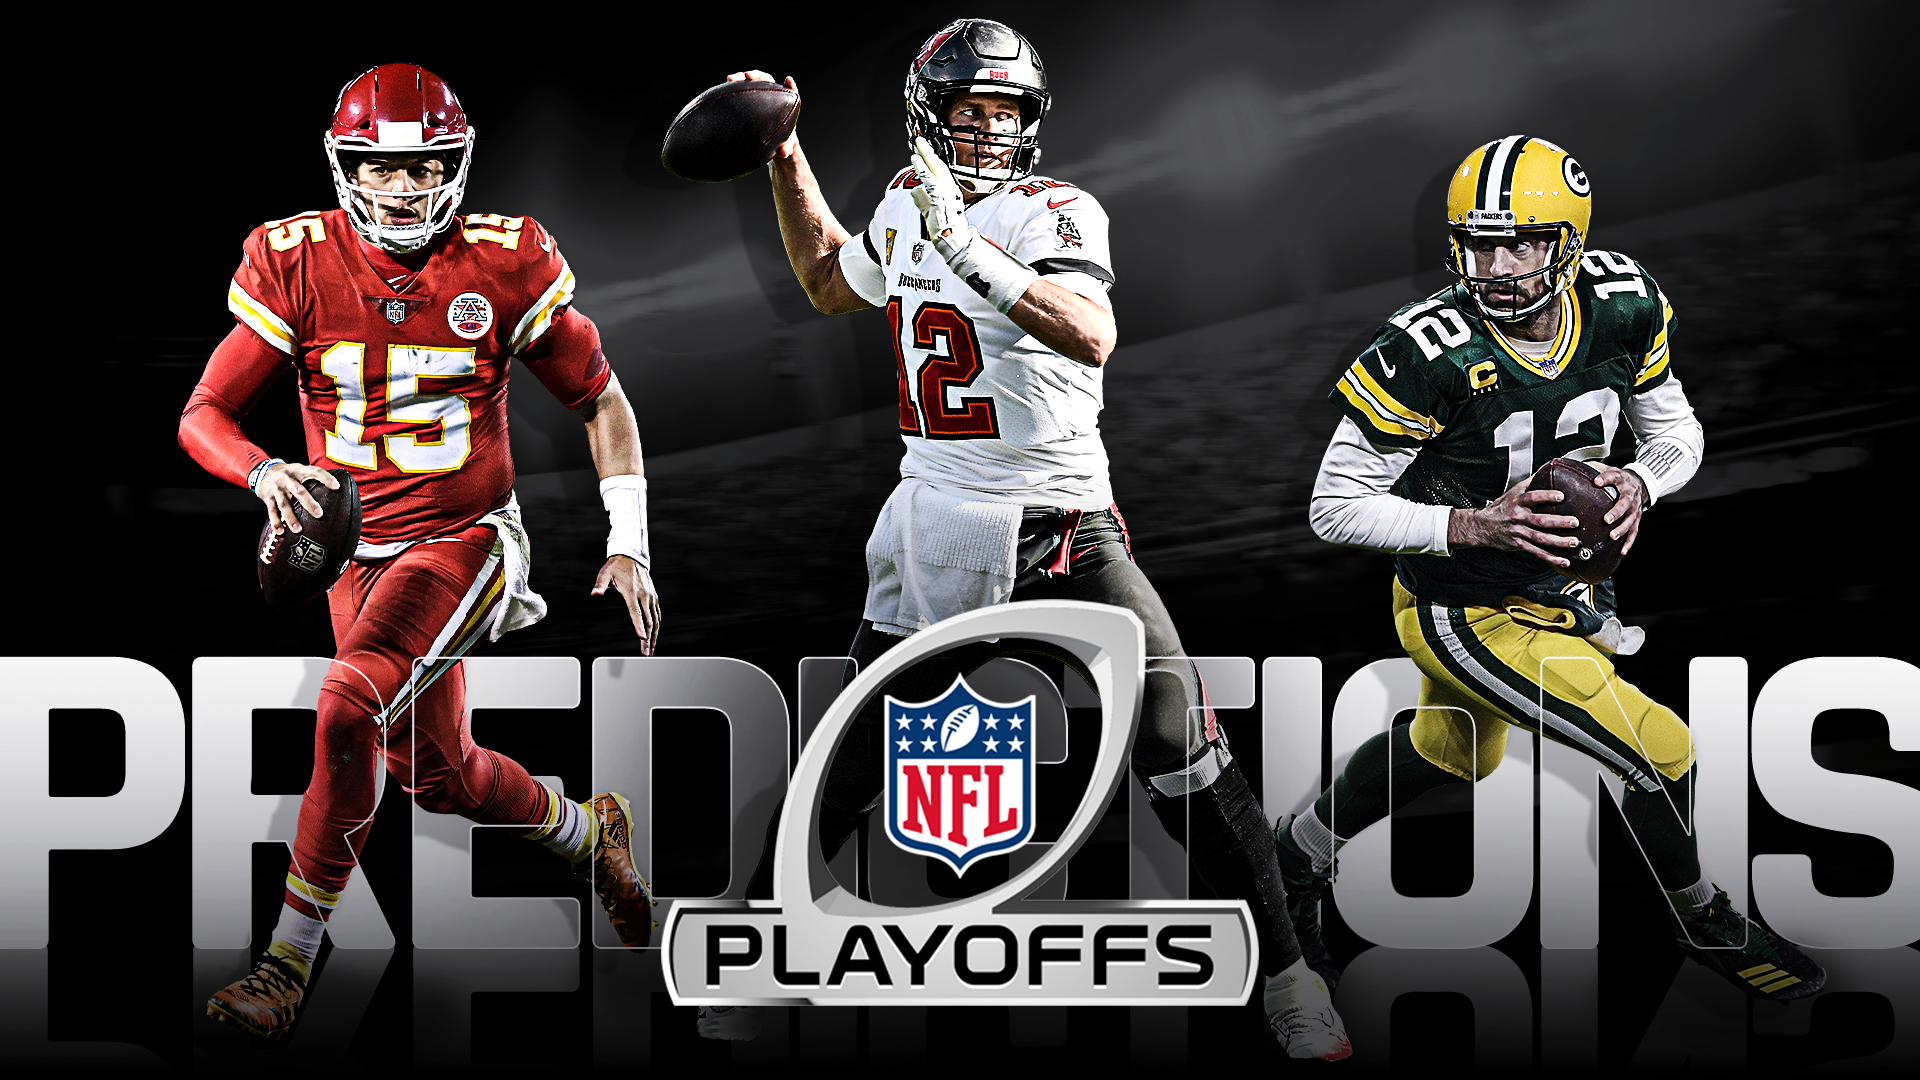 Nfl Playoff Picks Predictions For 2021 Afc Nfc Brackets And Super Bowl 55 Sporting News